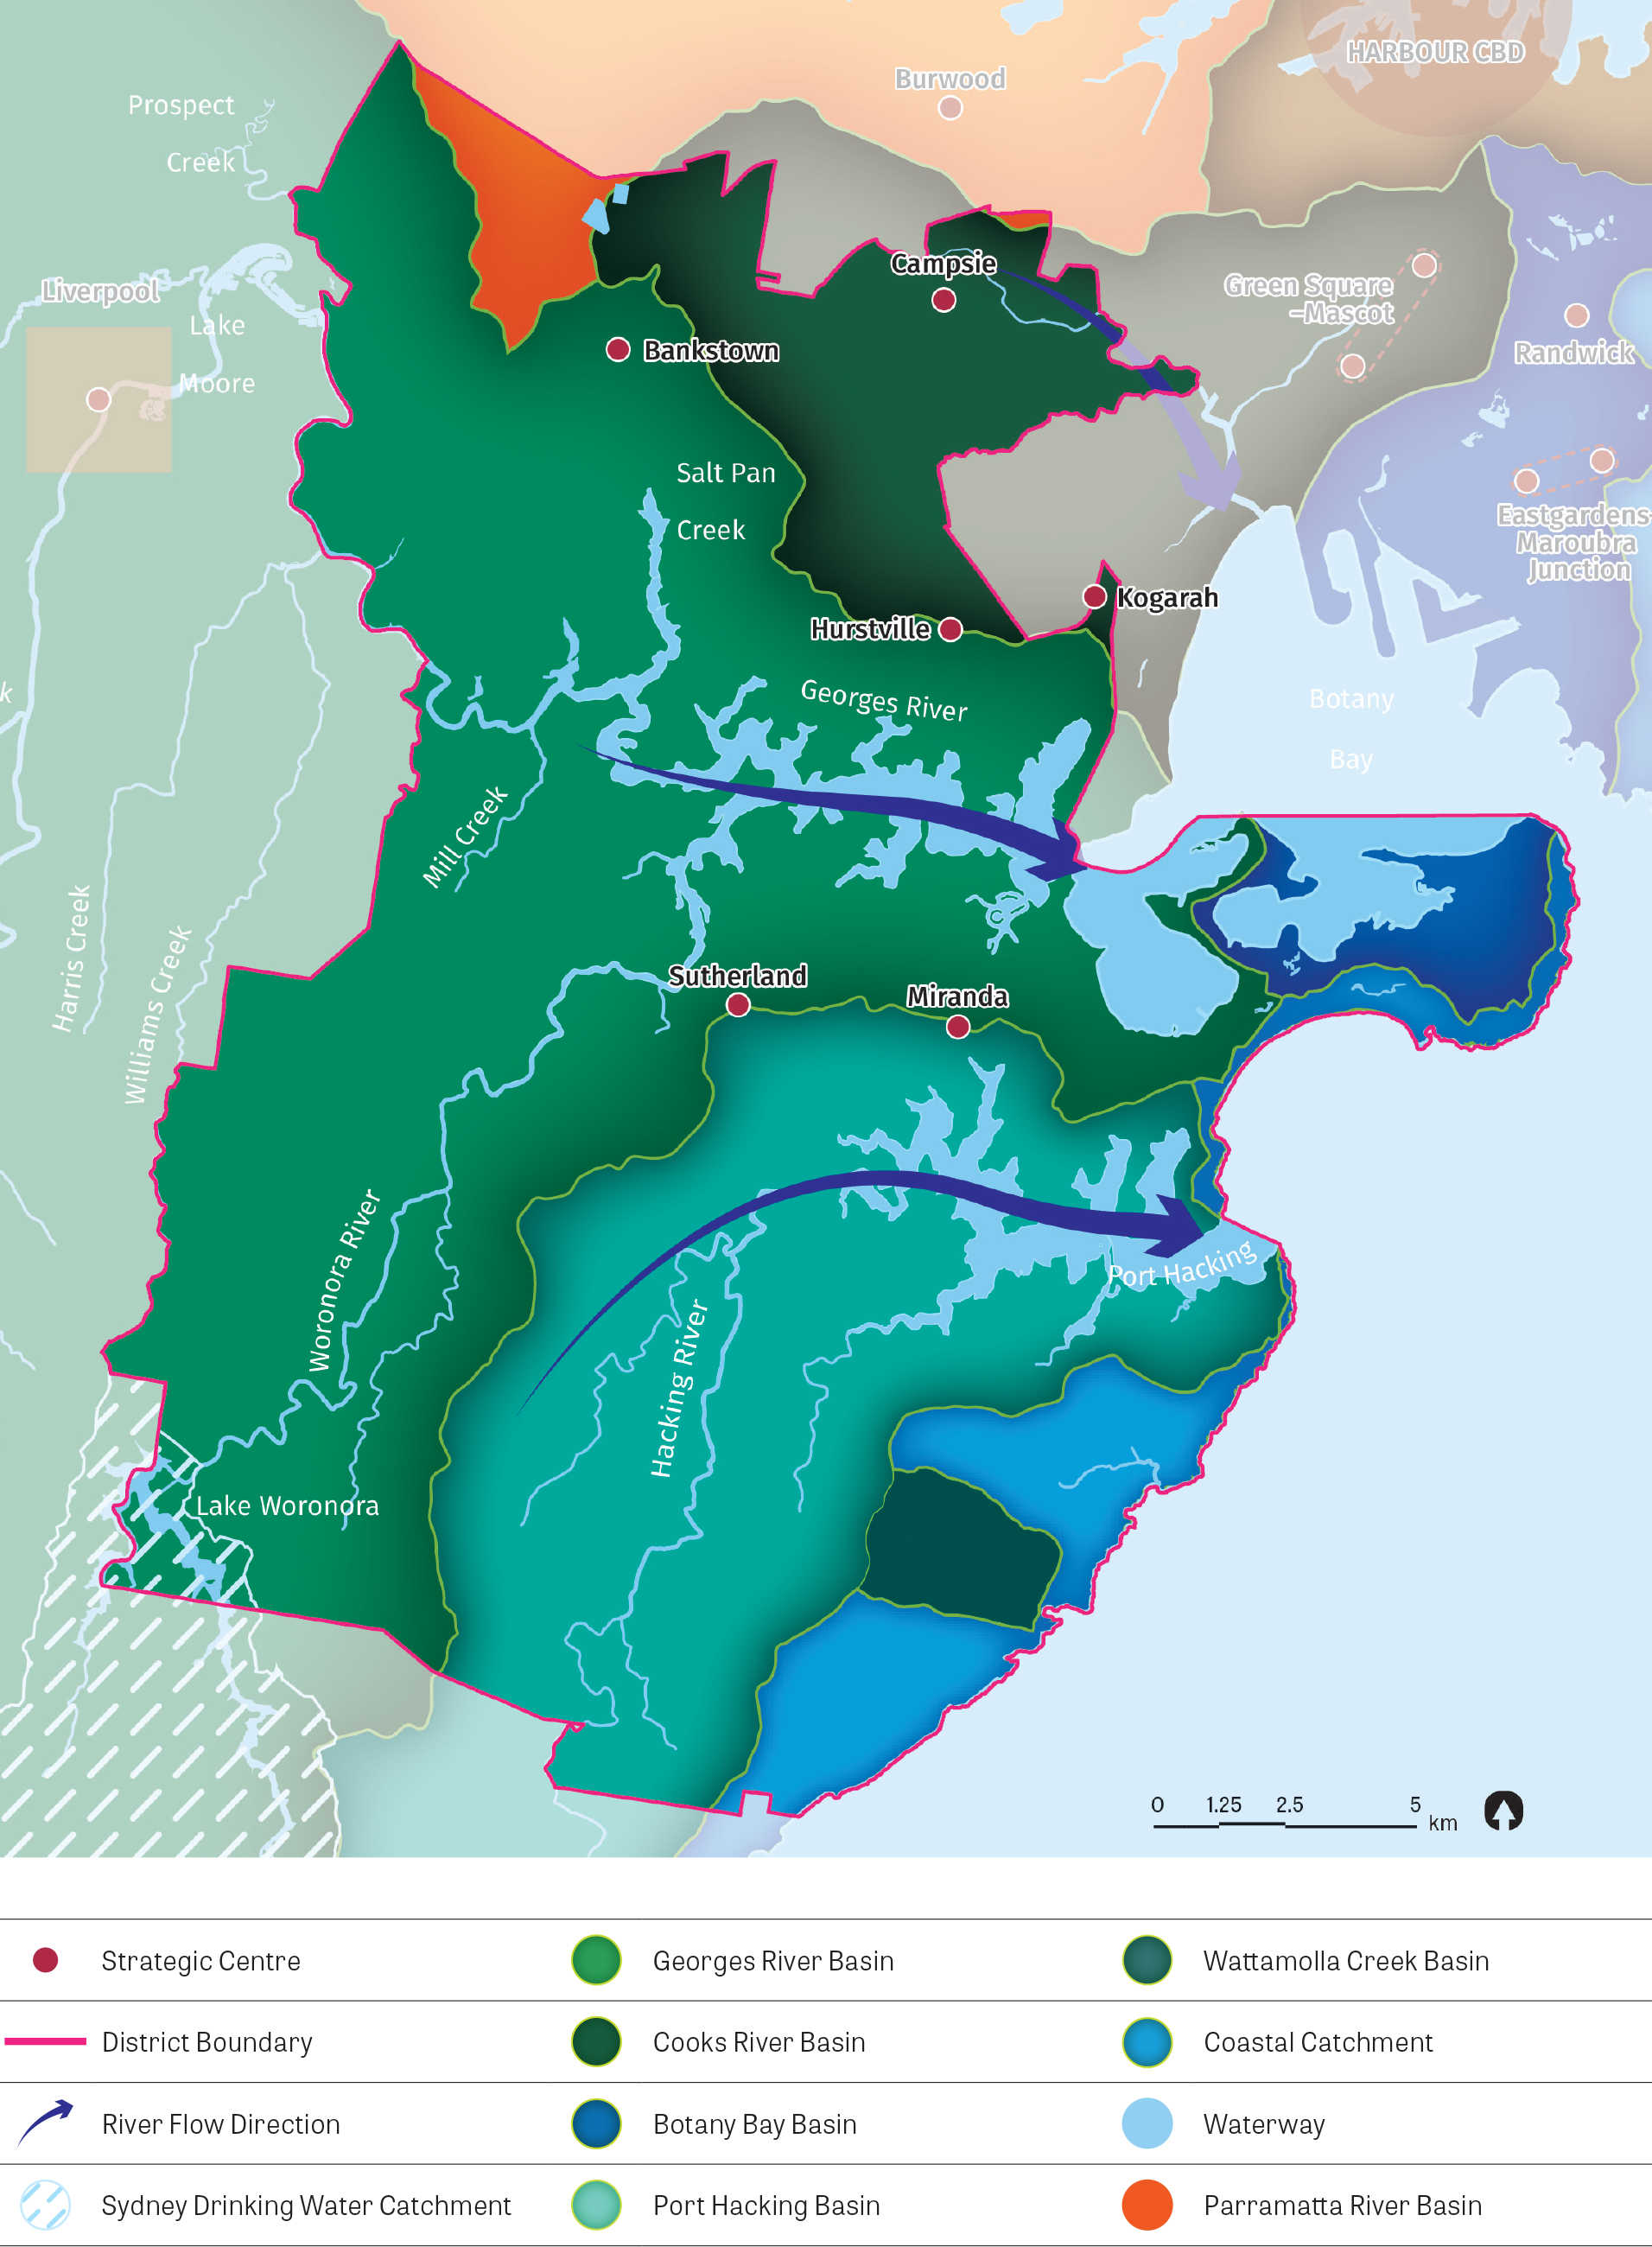 A stylised map showing the river catchments and waterways, including coastal catchment, river flow direction and the Sydney drinking water catchment.